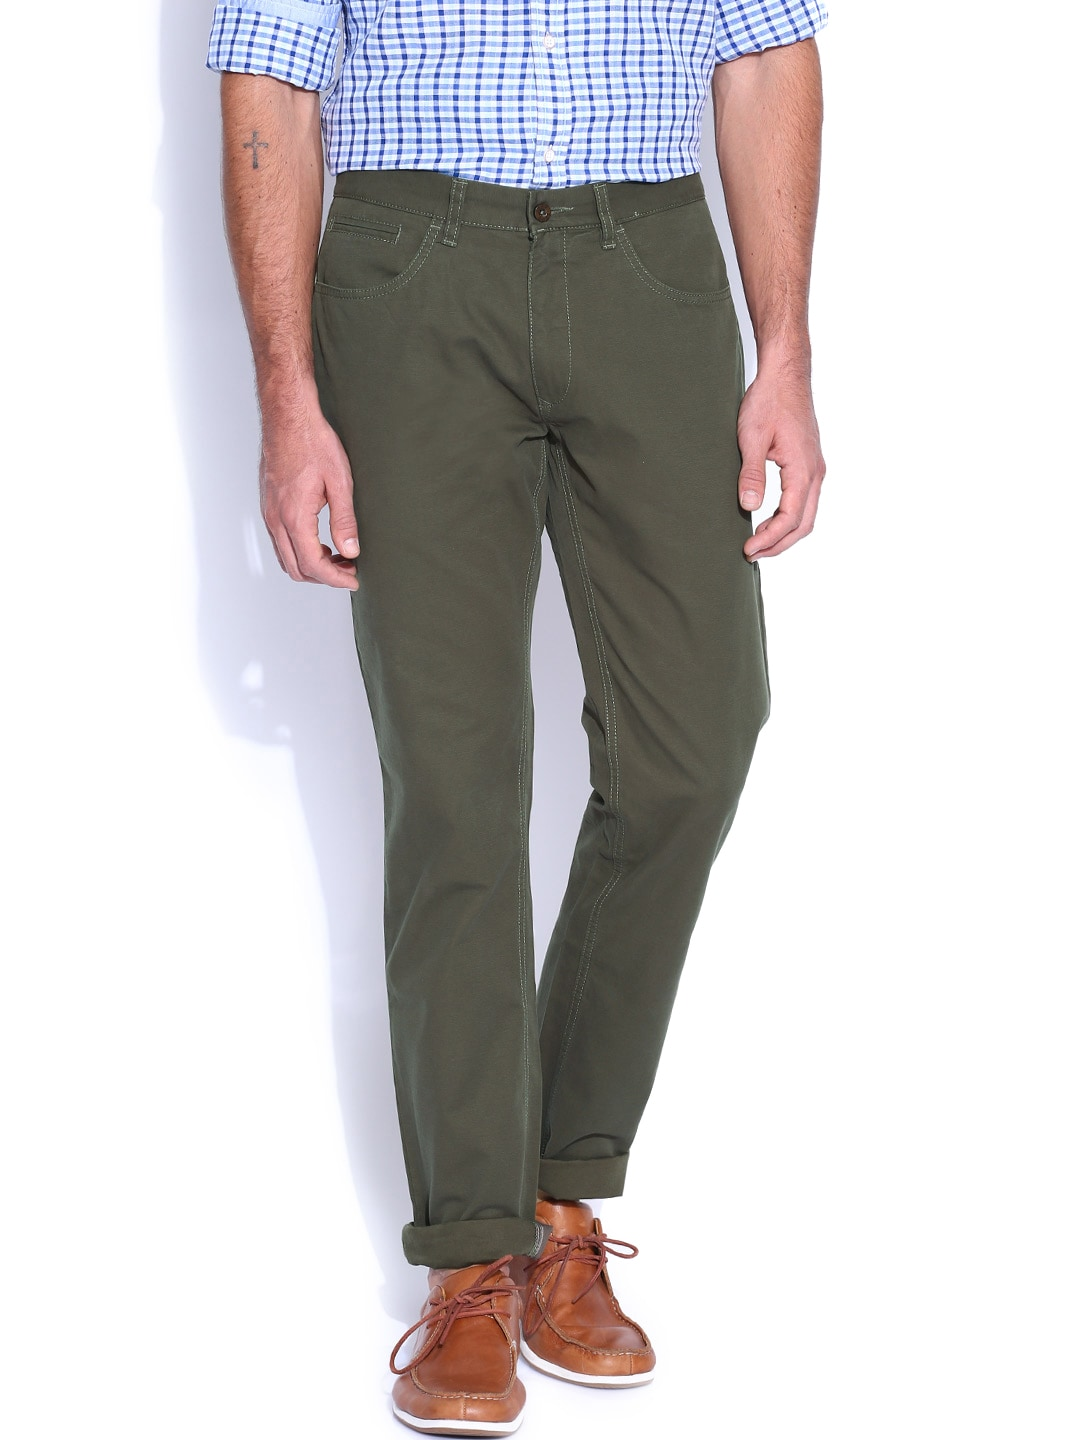 IZOD Olive Green Chino Trousers